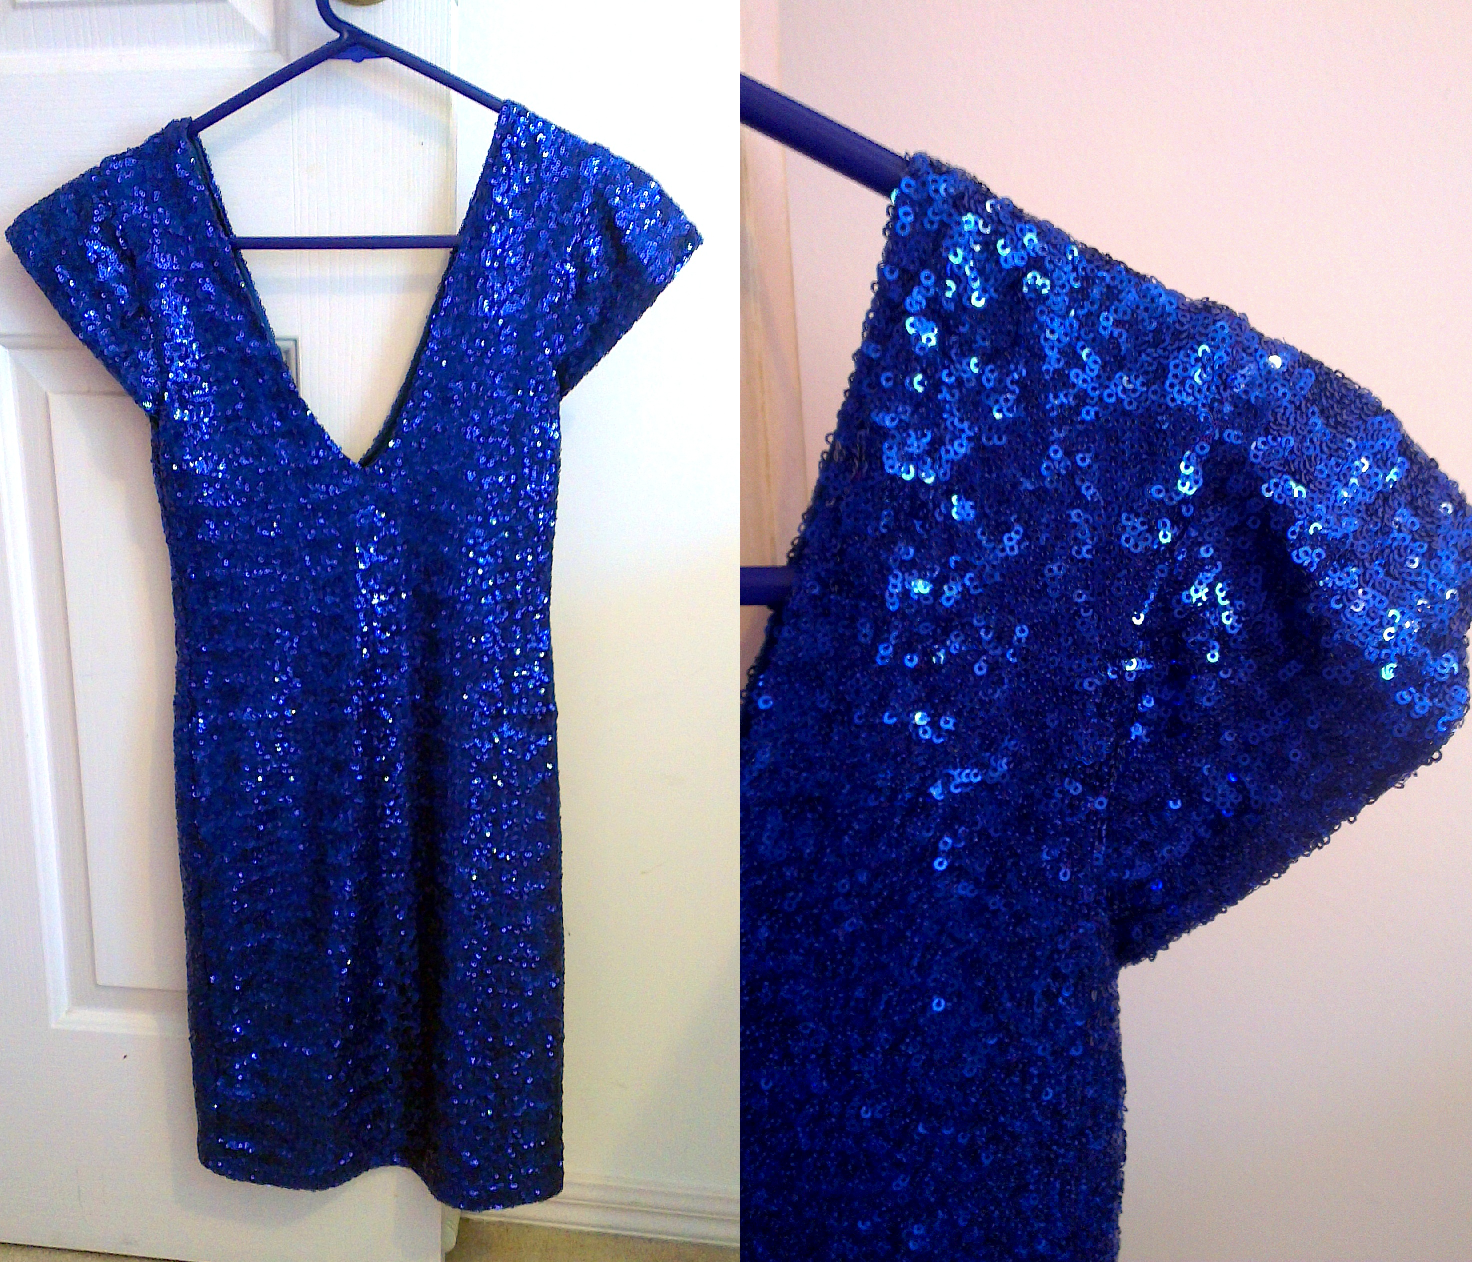 Blue sparkly dress of dreams.